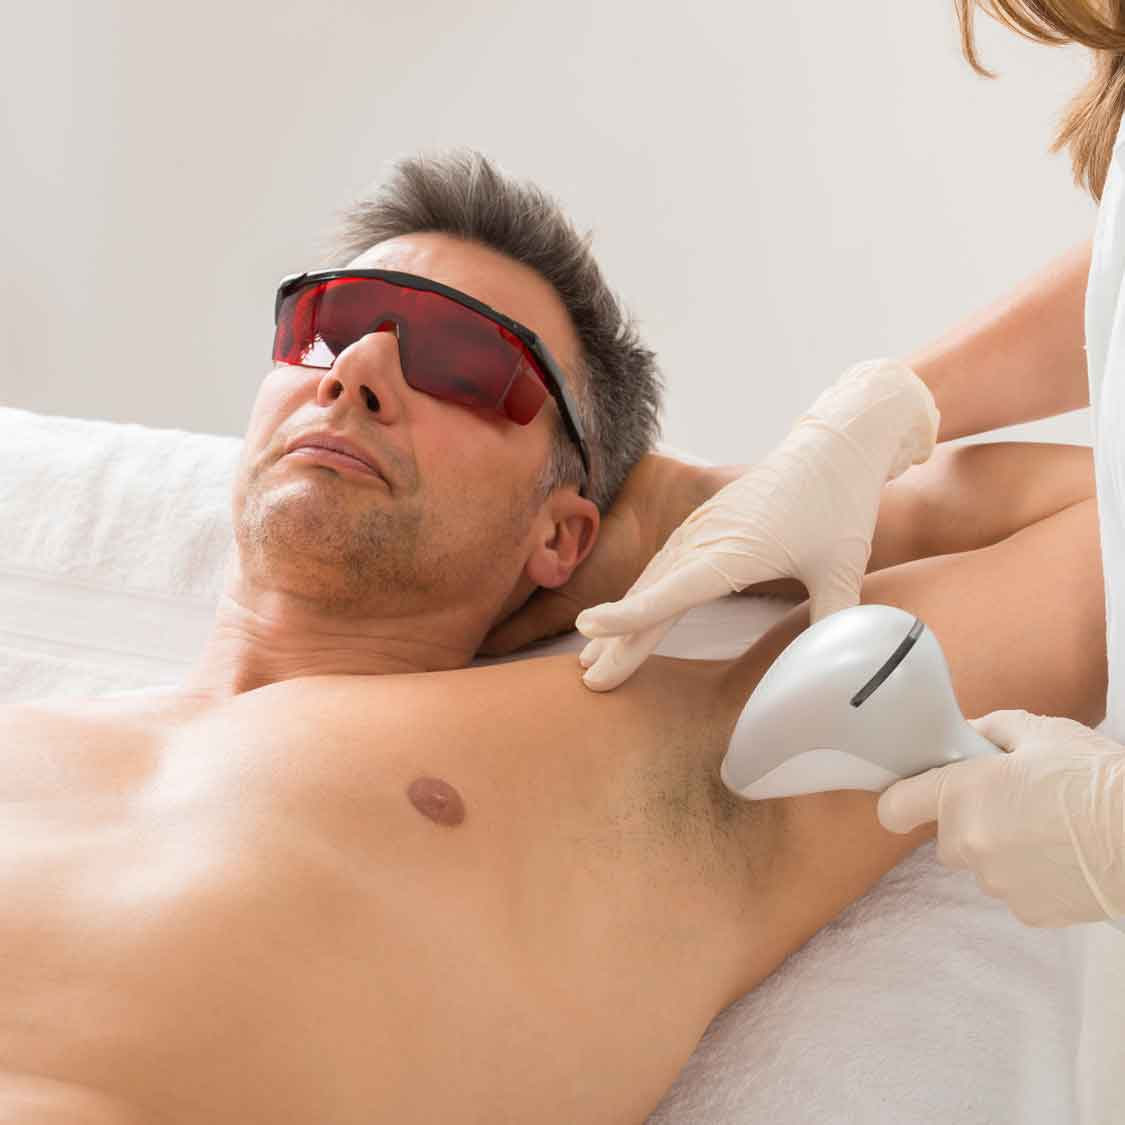 HAIR REMOVAL LASER TREATMENT SOUTHEND ON SEA ESSEX BODY AESTHETICS 3